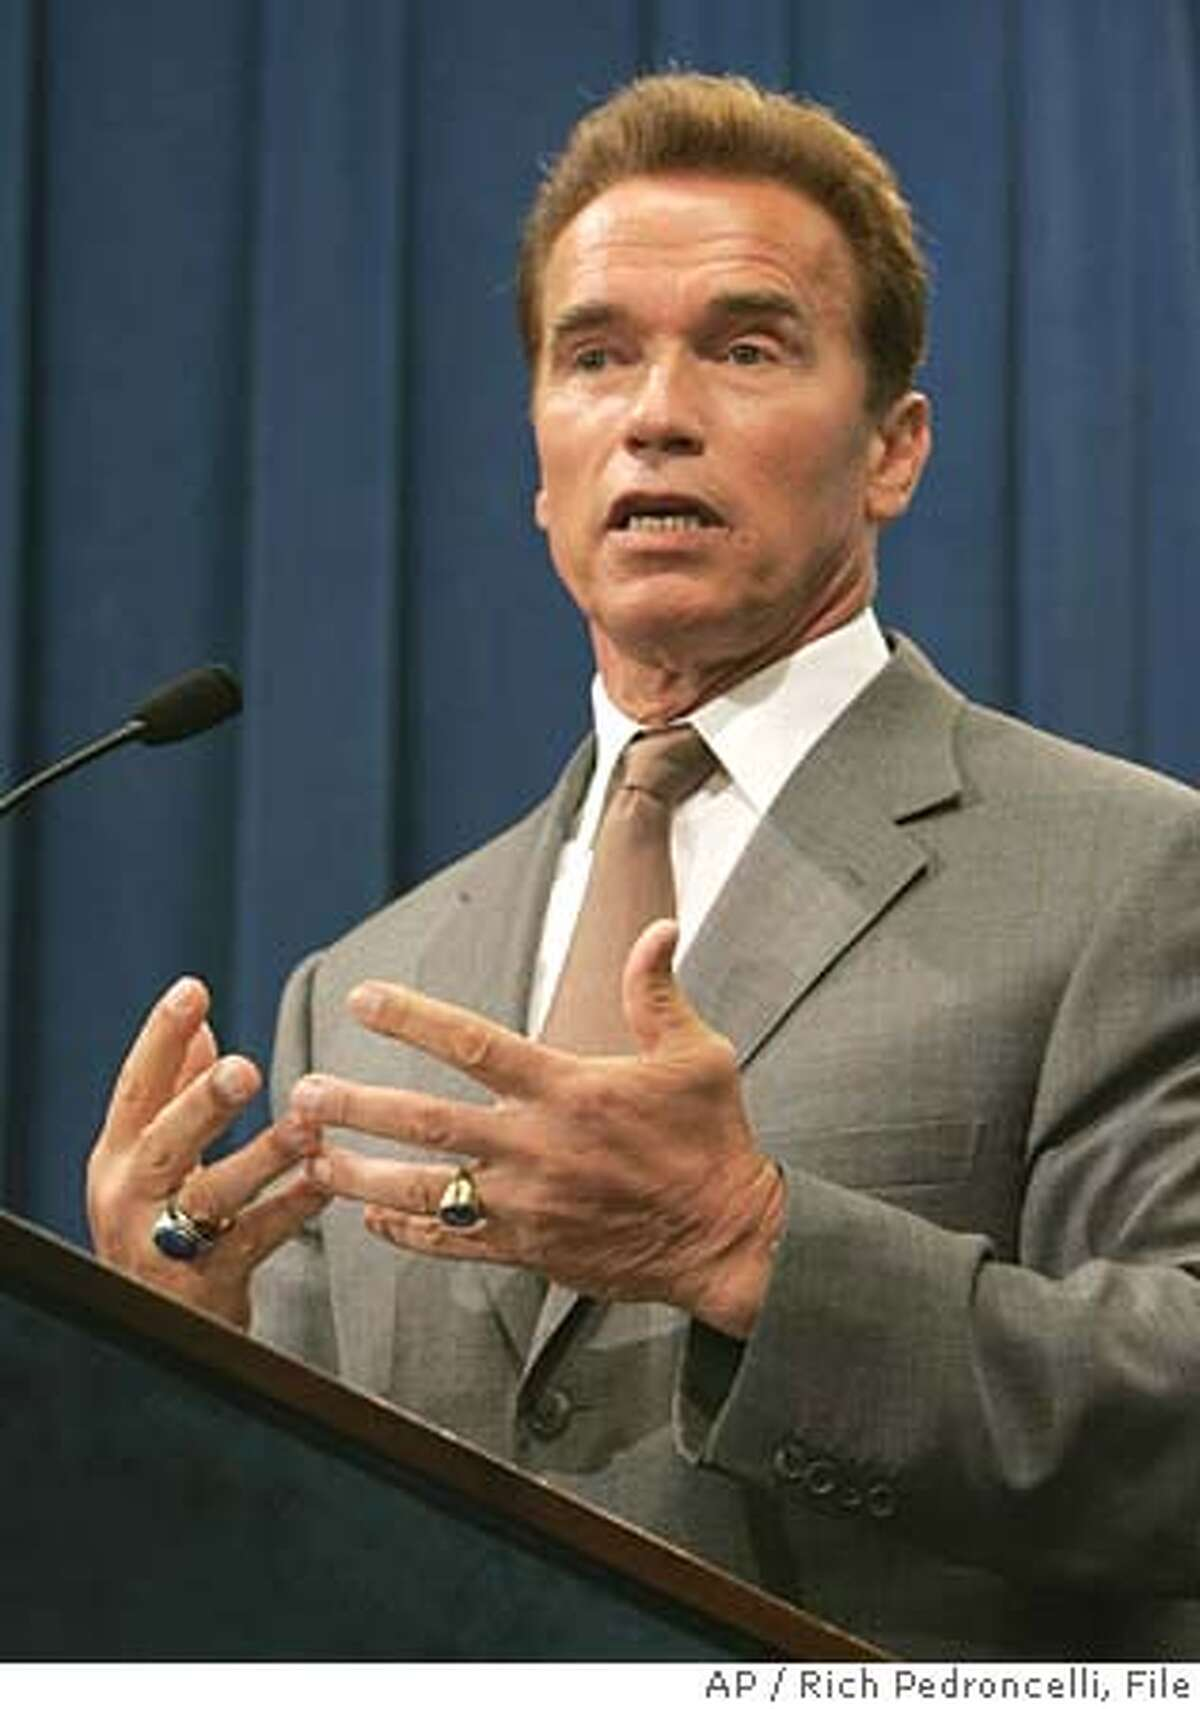 Gov. Arnold Schwarzenegger called for more bipartisan efforts between his office and Democratic lawmakers to reach a budget agreement and find compromise on measures pending on the November ballot, during a Capitol news conference held in Sacramento, Calif., Tuesday, June 21, 2005. According to the Field Poll released Tuesday, 37 percent of registered California voters approve of Schwarzenegger's job performance, a drop of 18 percentage points since February. (AP Photo/Rich Pedroncelli) Ran on: 06-22-2005 Gov. Arnold Schwarzenegger calls for more bipartisan budget efforts, even as he attacks the Democrats plan as irresponsible and full of red ink. Ran on: 07-09-2005 Assembly Speaker Fabian N��ez and Gov. Arnold Schwarzenegger have been getting along much better in recent weeks. Ran on: 07-09-2005 Assembly Speaker Fabian N��ez and Gov. Arnold Schwarzenegger have been getting along much better in recent weeks.